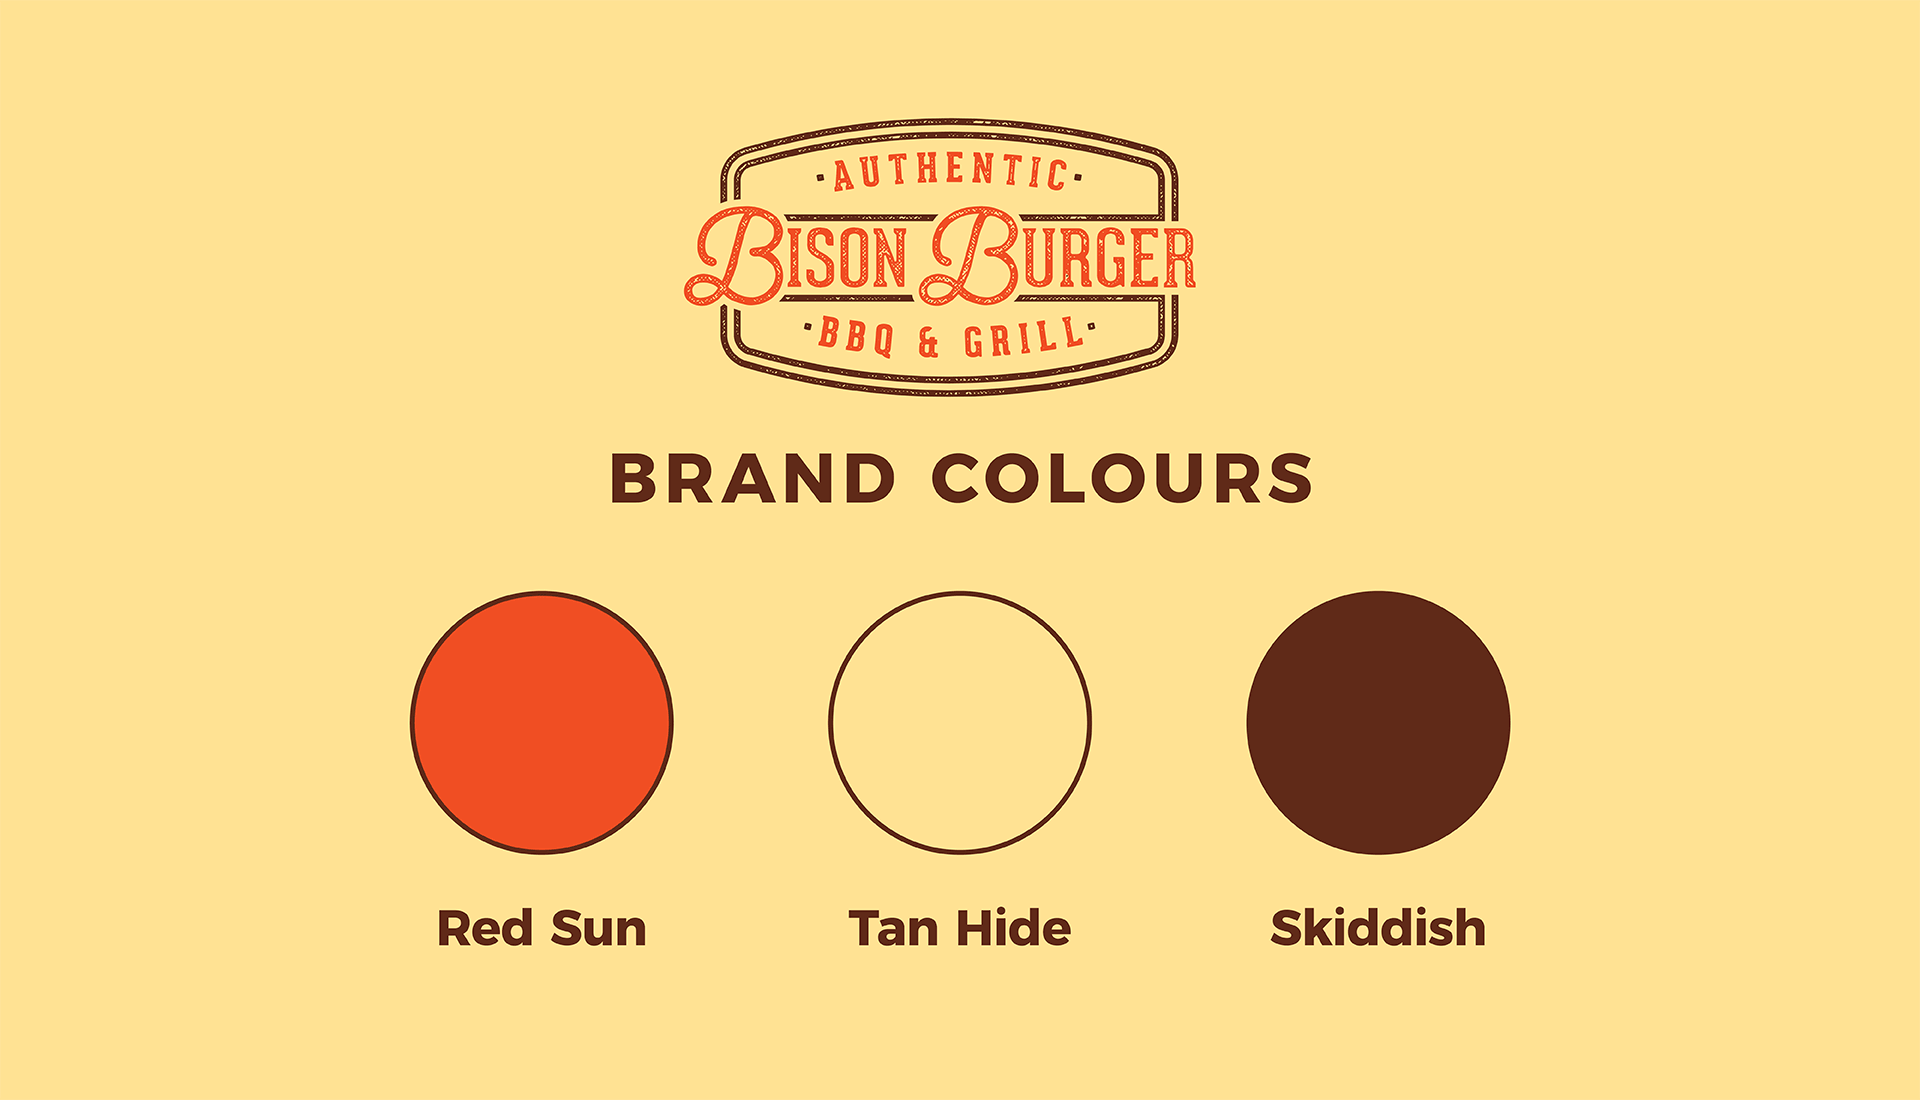 Bison Burger BBQ & Grill | Indigenous Restaurant and food truck brand colours, Red Sun, Tan Hide, and Skiddish